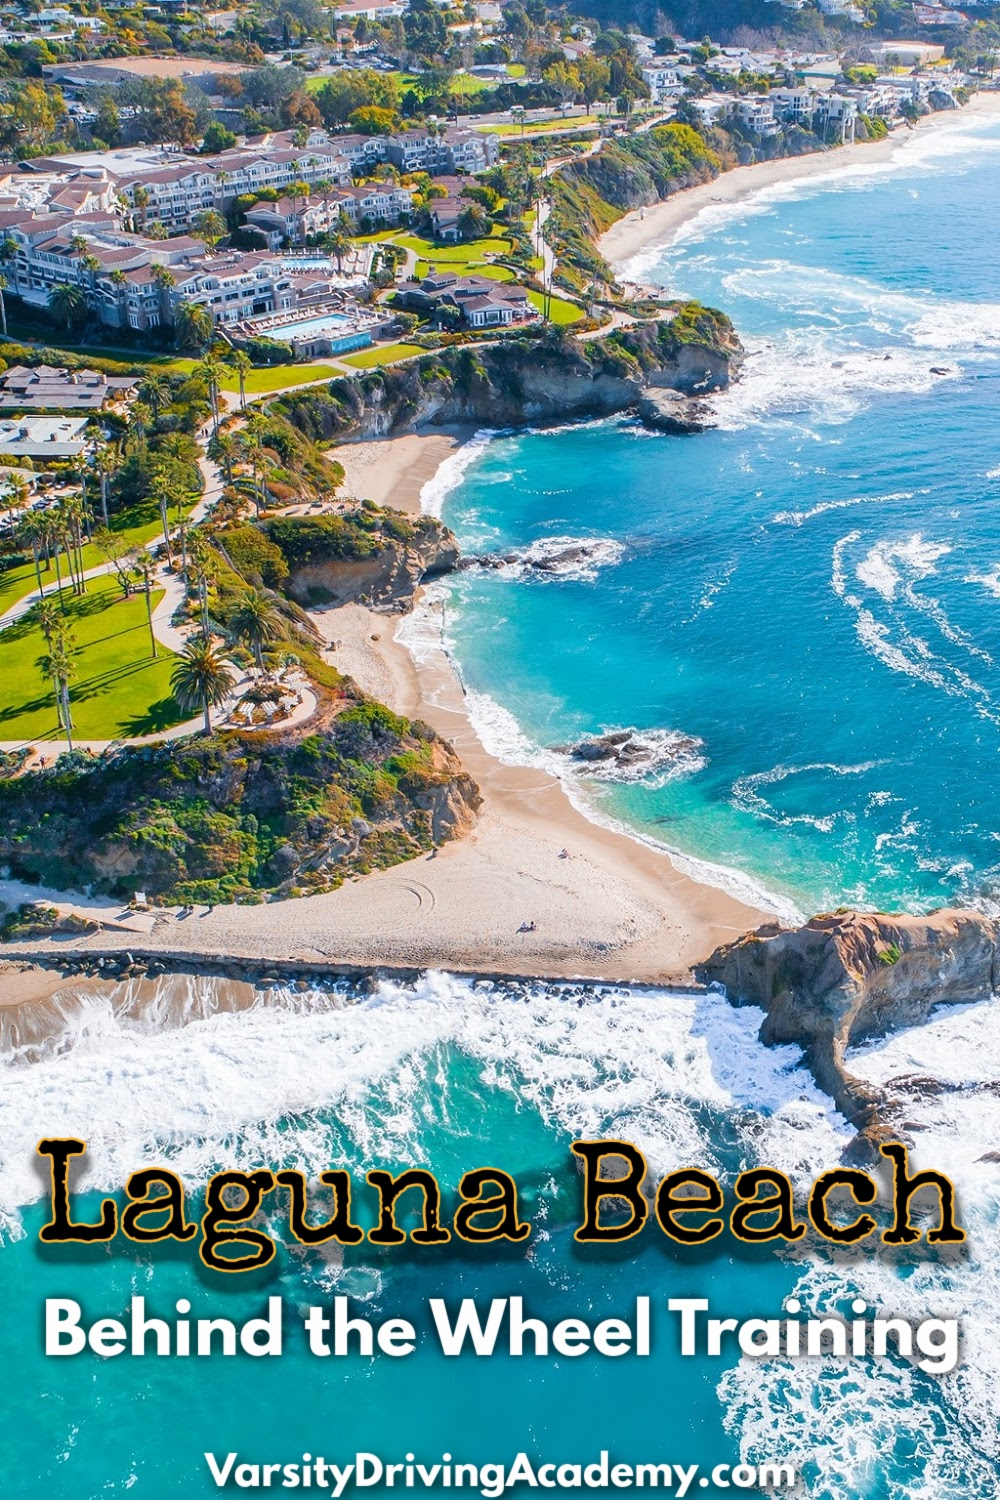 Laguna Beach behind the wheel training is important for all inexperienced drivers as it is the perfect time to learn defensive driving and more.